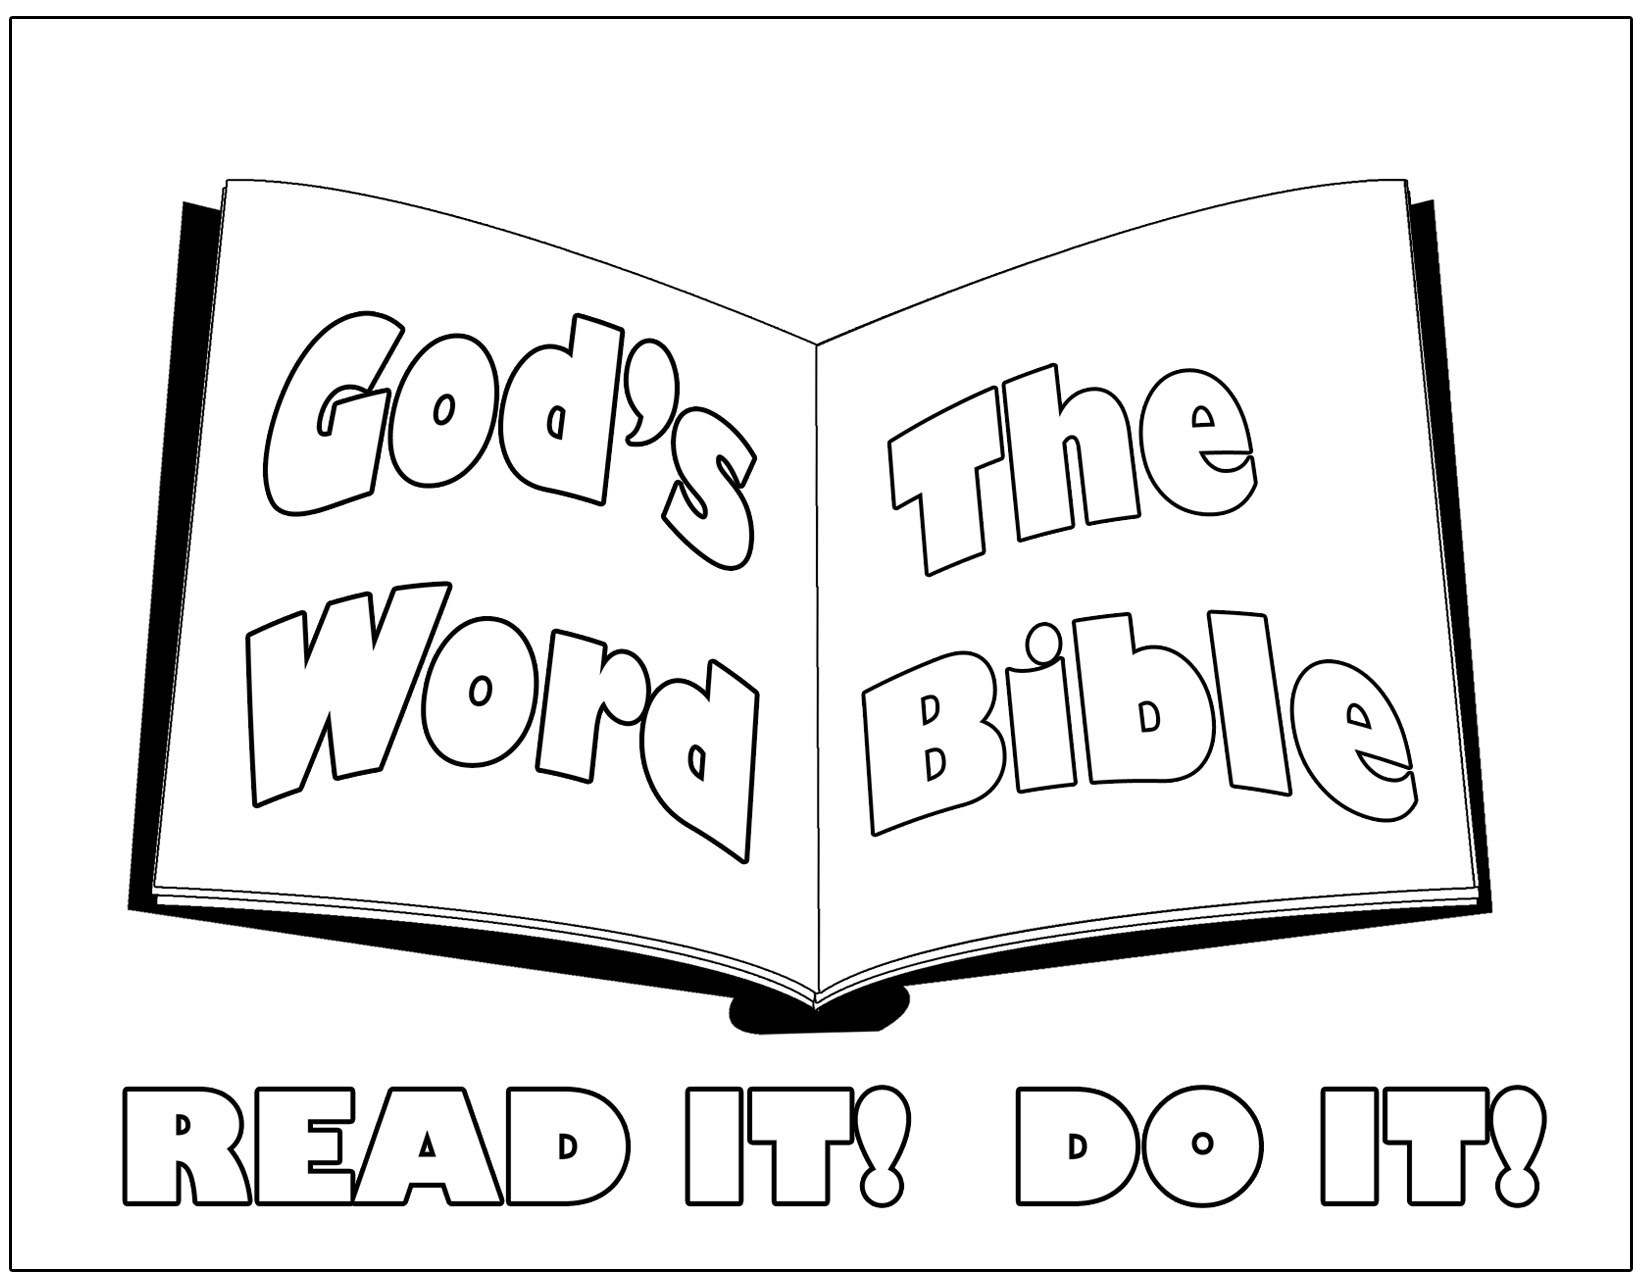 free printable bible coloring pages printable coloring free bible verse coloring pages pdf pages bible free printable coloring